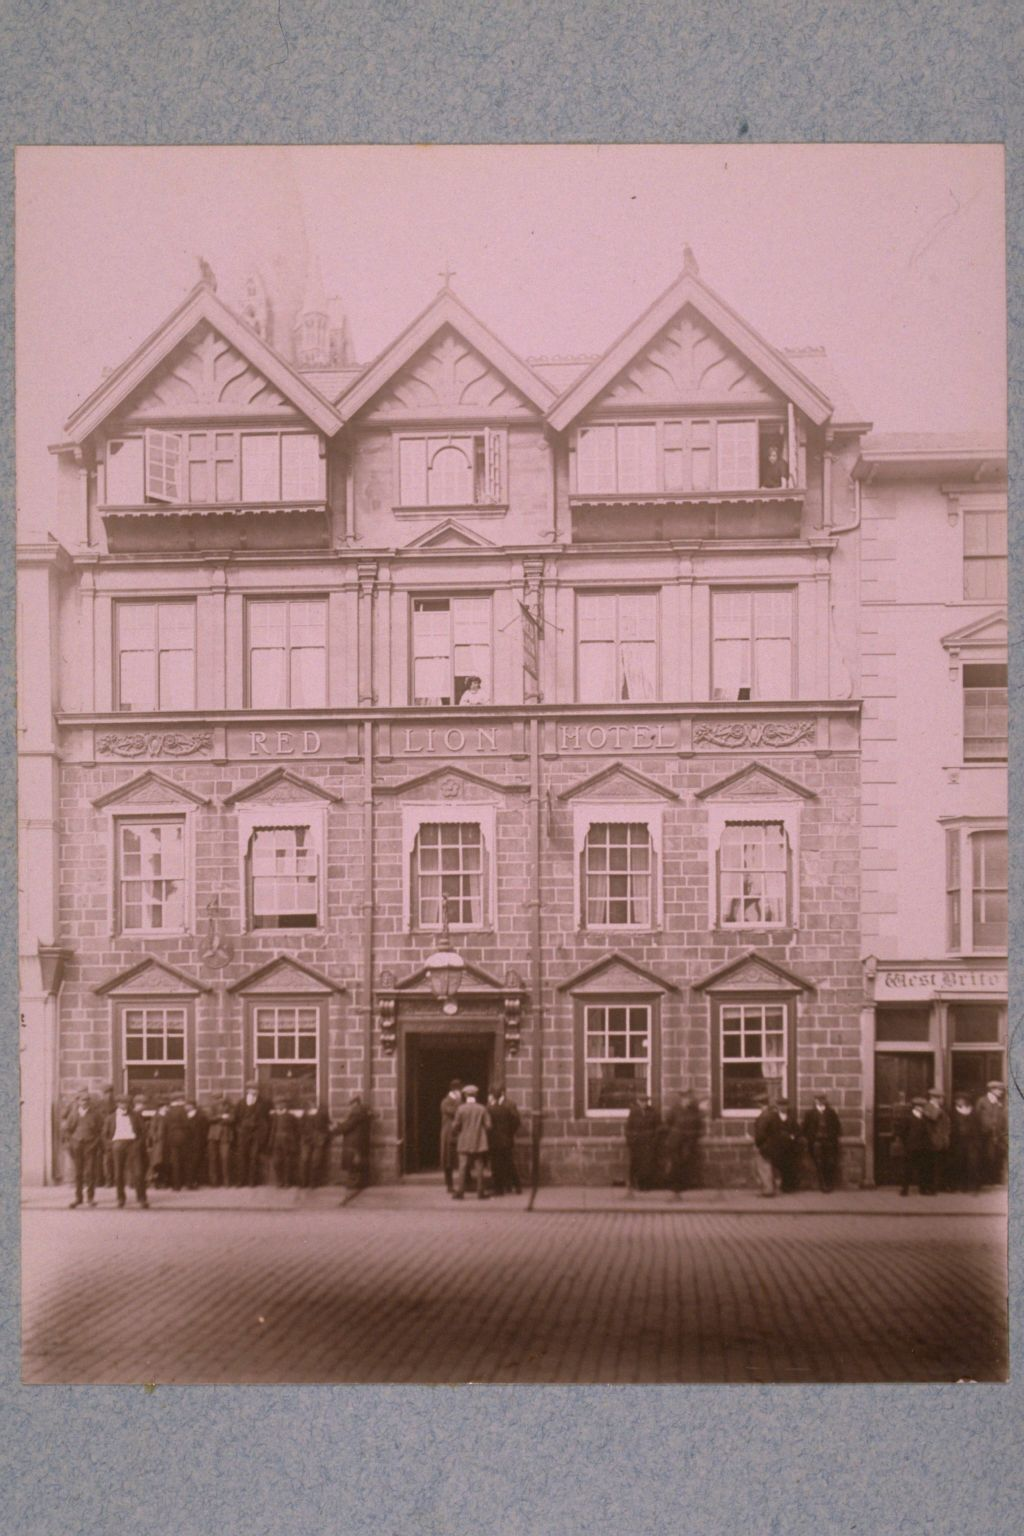 Red Lion Hotel, Truro.